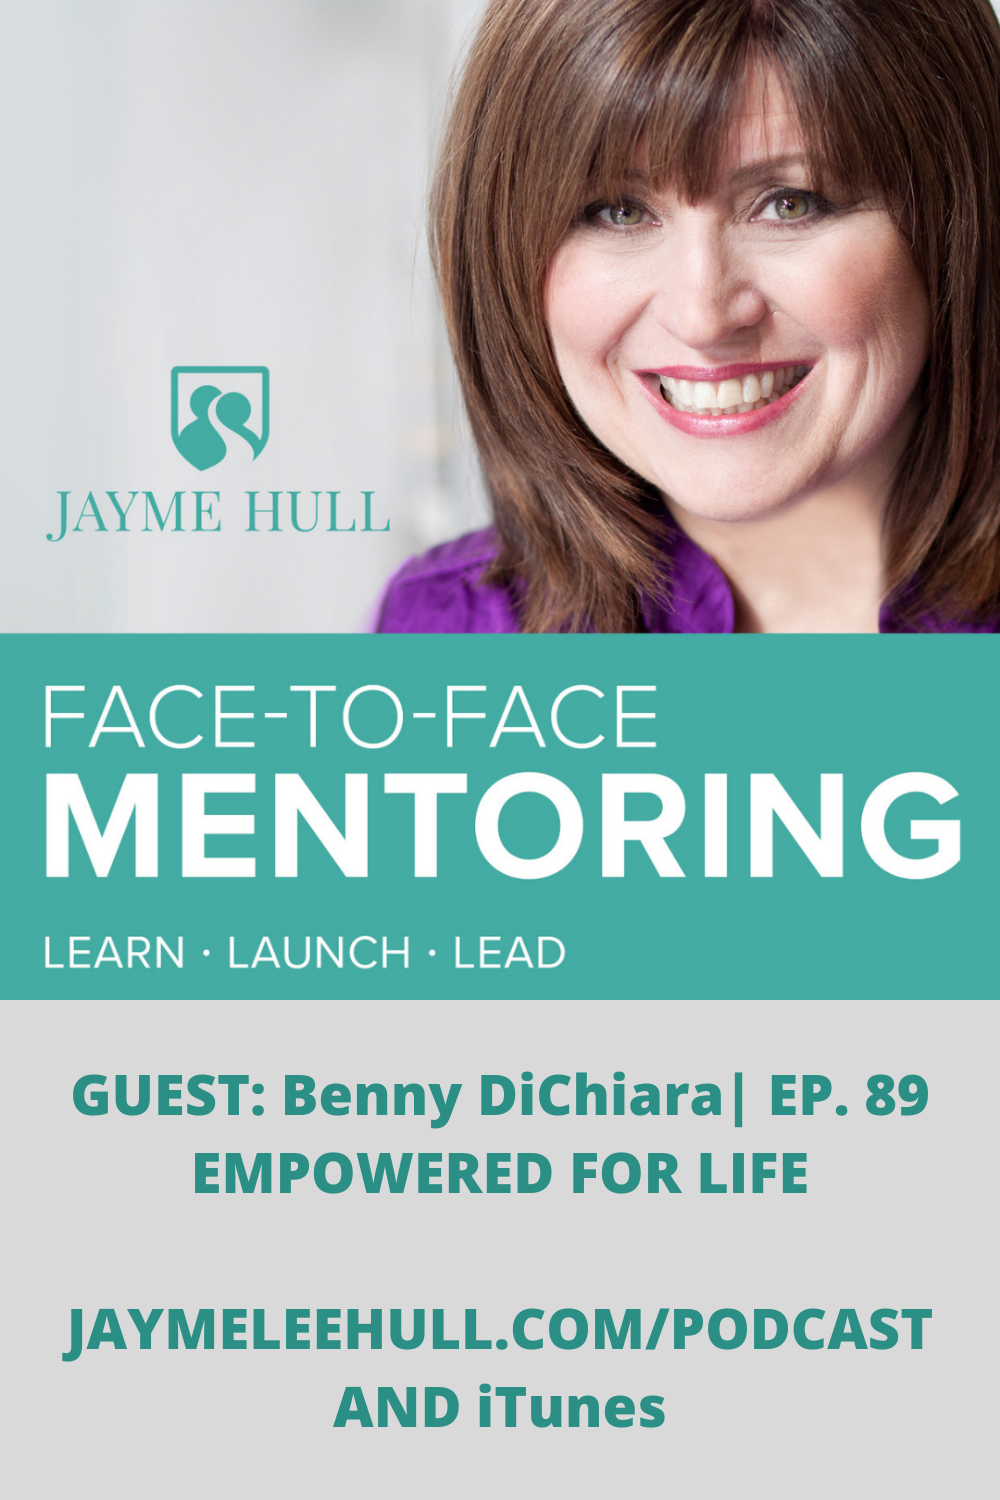 Do you believe in miracles? Do you believe God has a plan for your life? This week on Face To Face Mentoring Podcast episode #89 my guest is Benny DiChiara. Benny will share his passion for Jesus and how the personal crisis he experienced changed his life forever. From mentor to mentor with Empowered for life with Benny DiChiara.